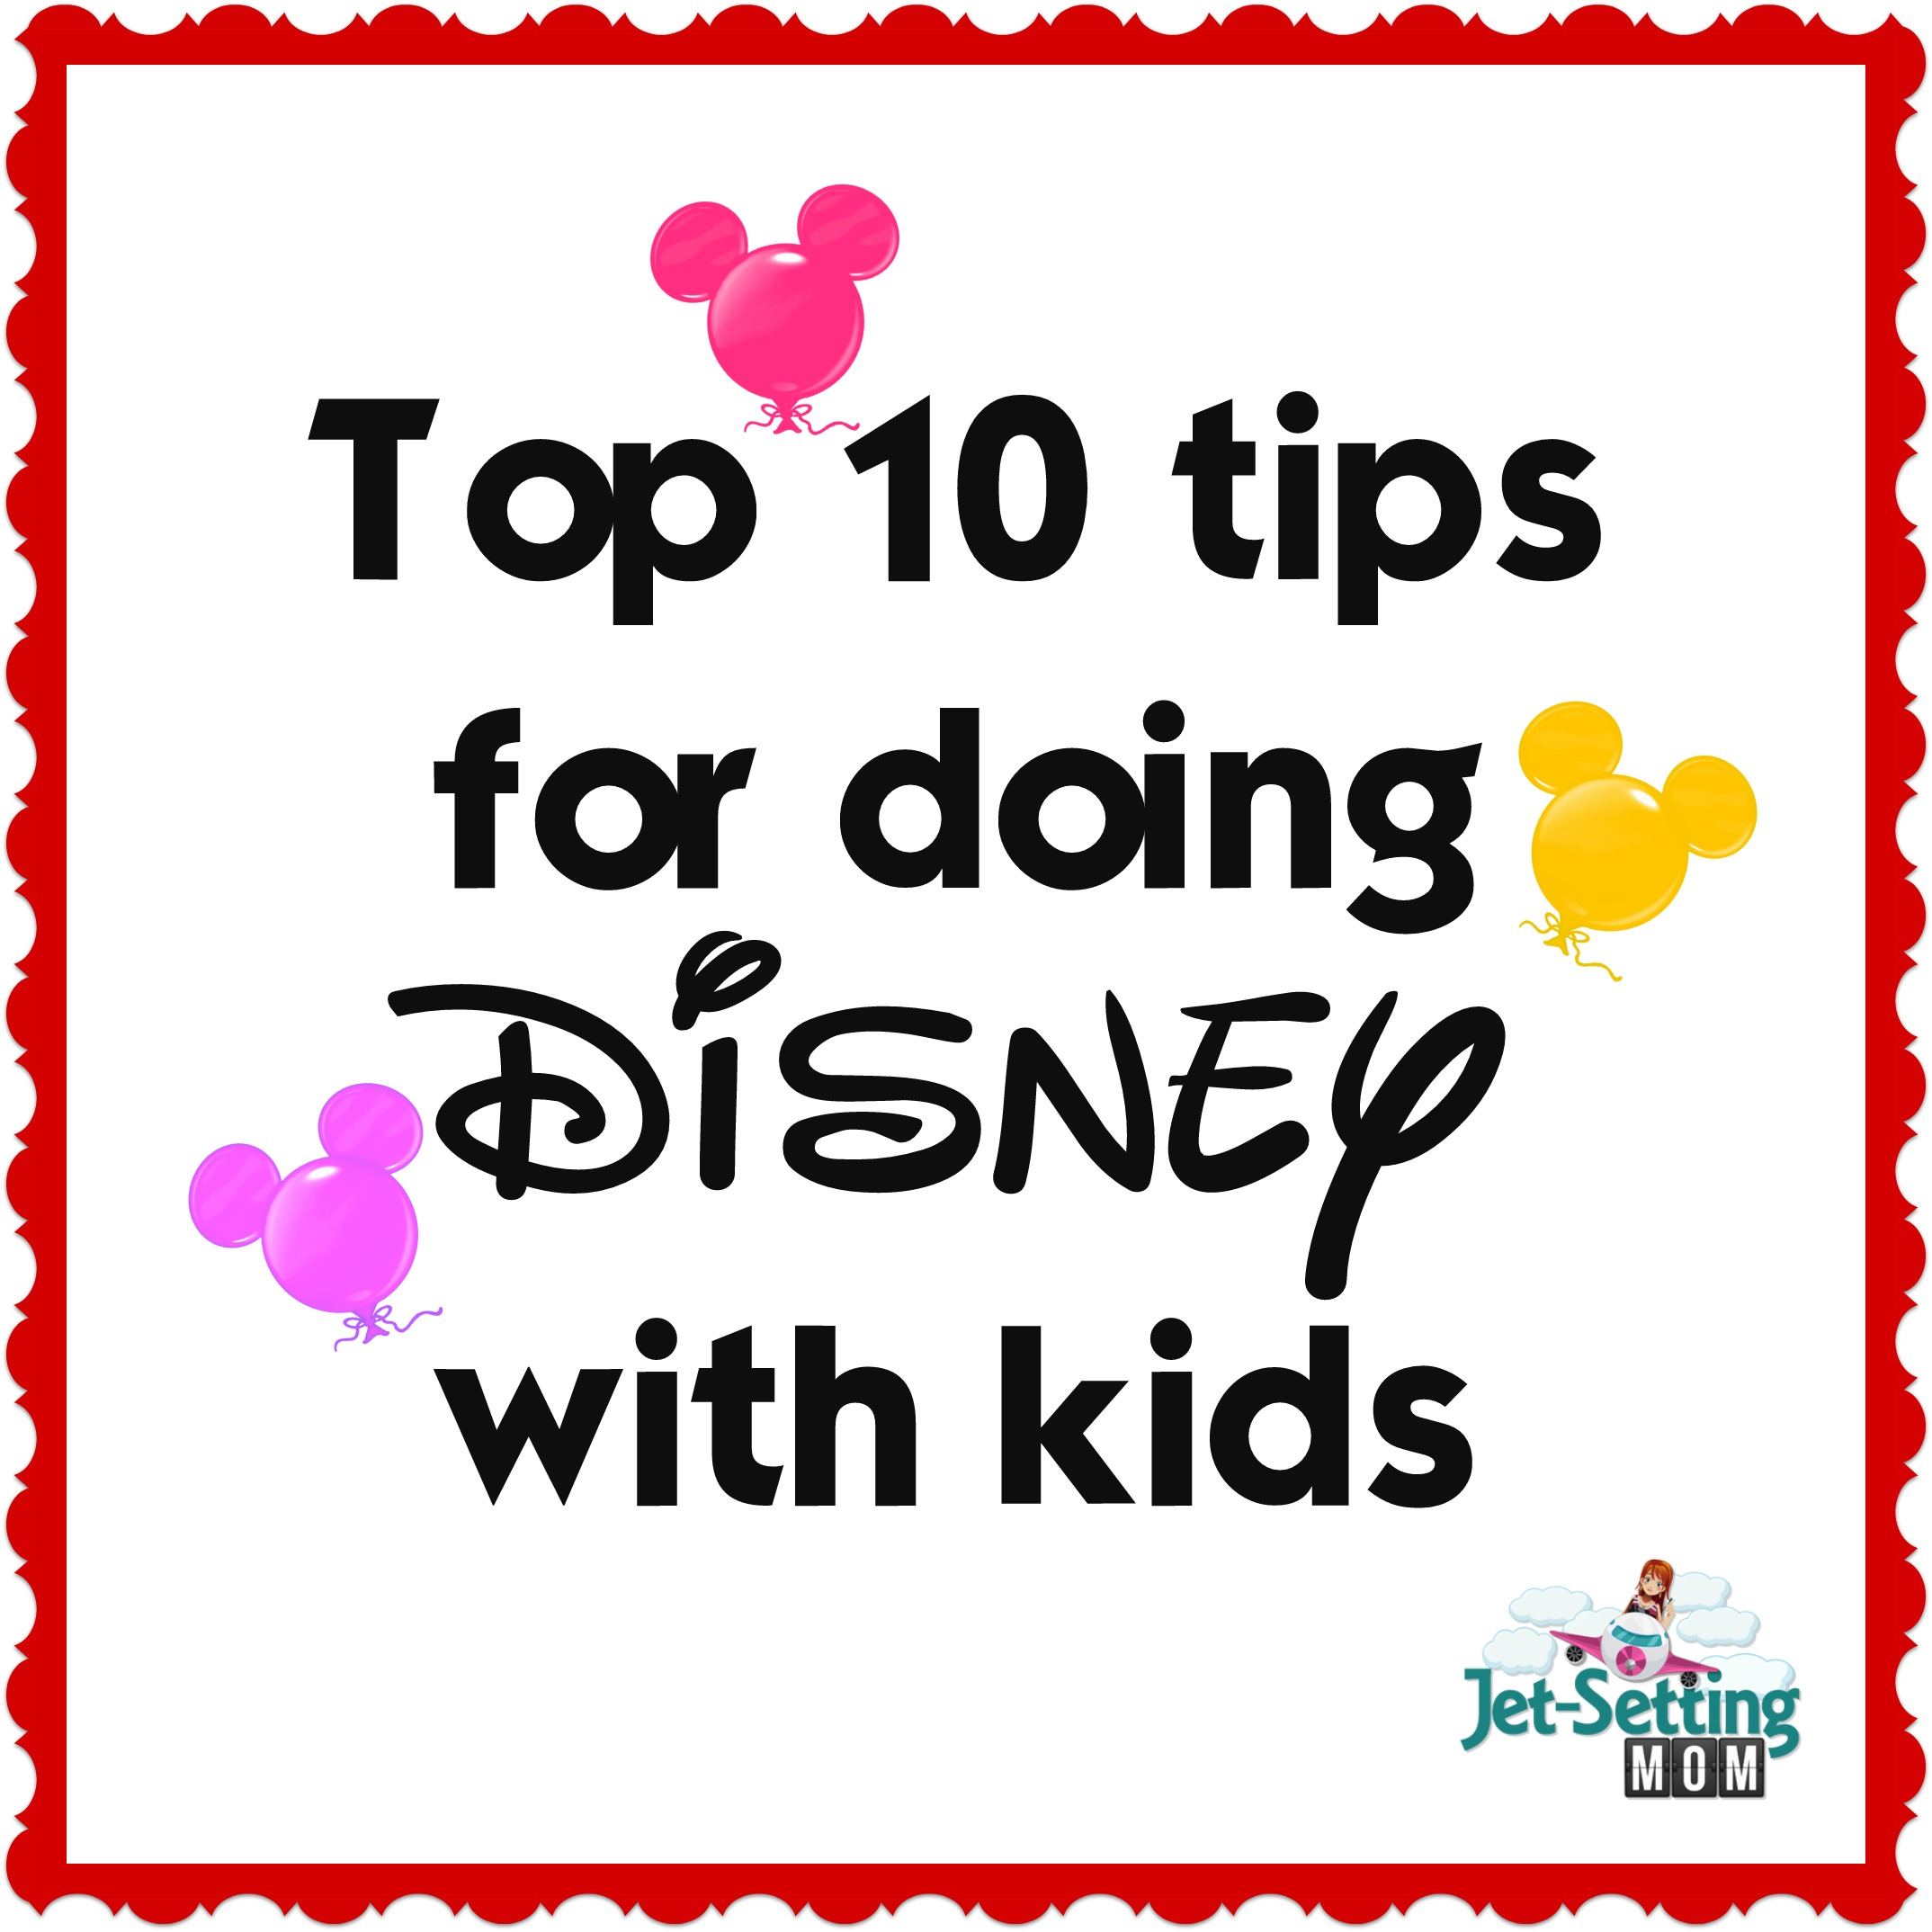 Top 10 Tips for doing Disney with kids!